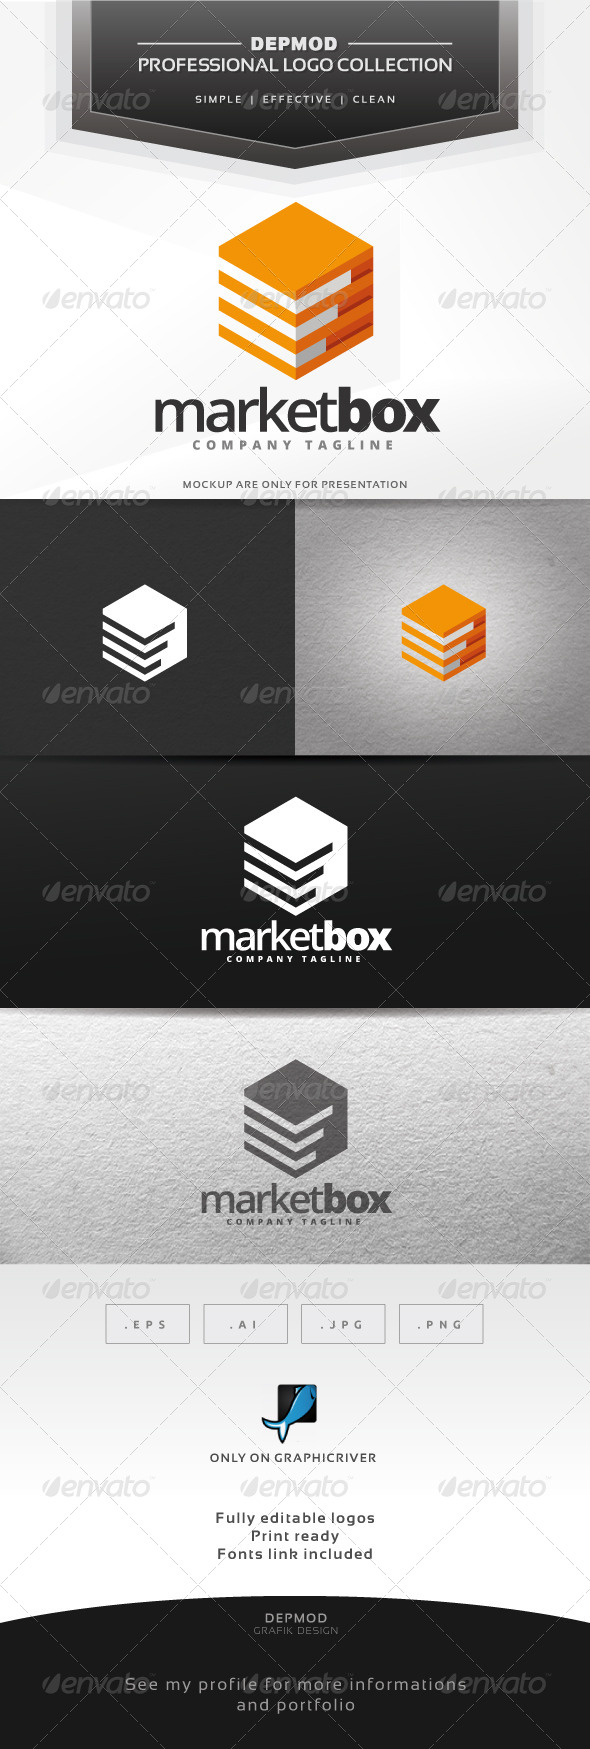 Market Box Logo - Abstract Logo Templates